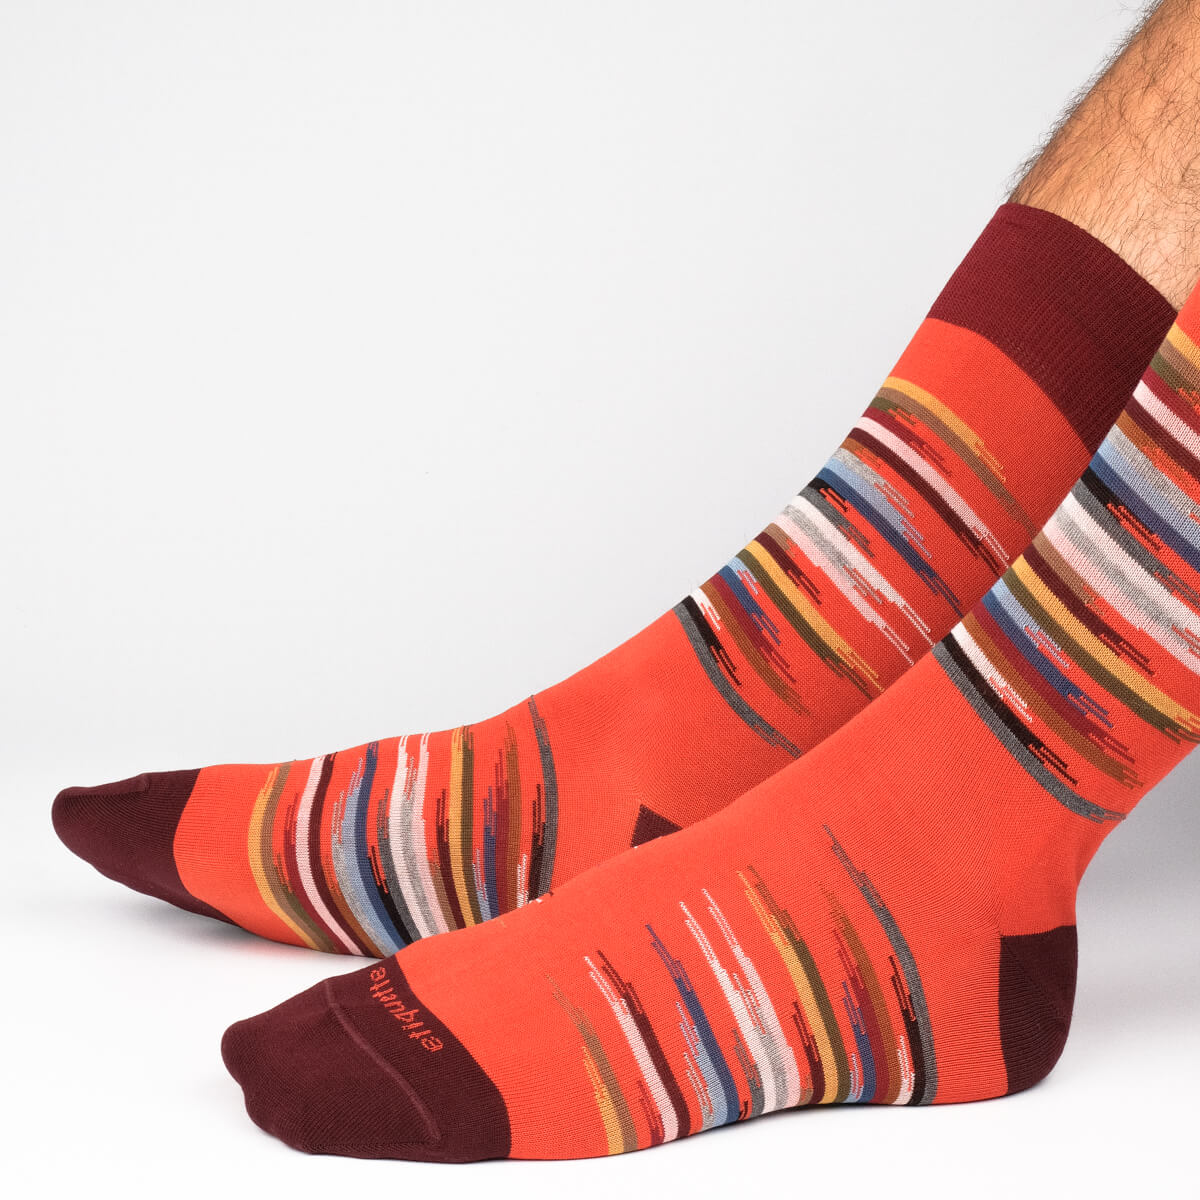 Mens Socks - Idyllic Men's Socks - Orange⎪Etiquette Clothiers